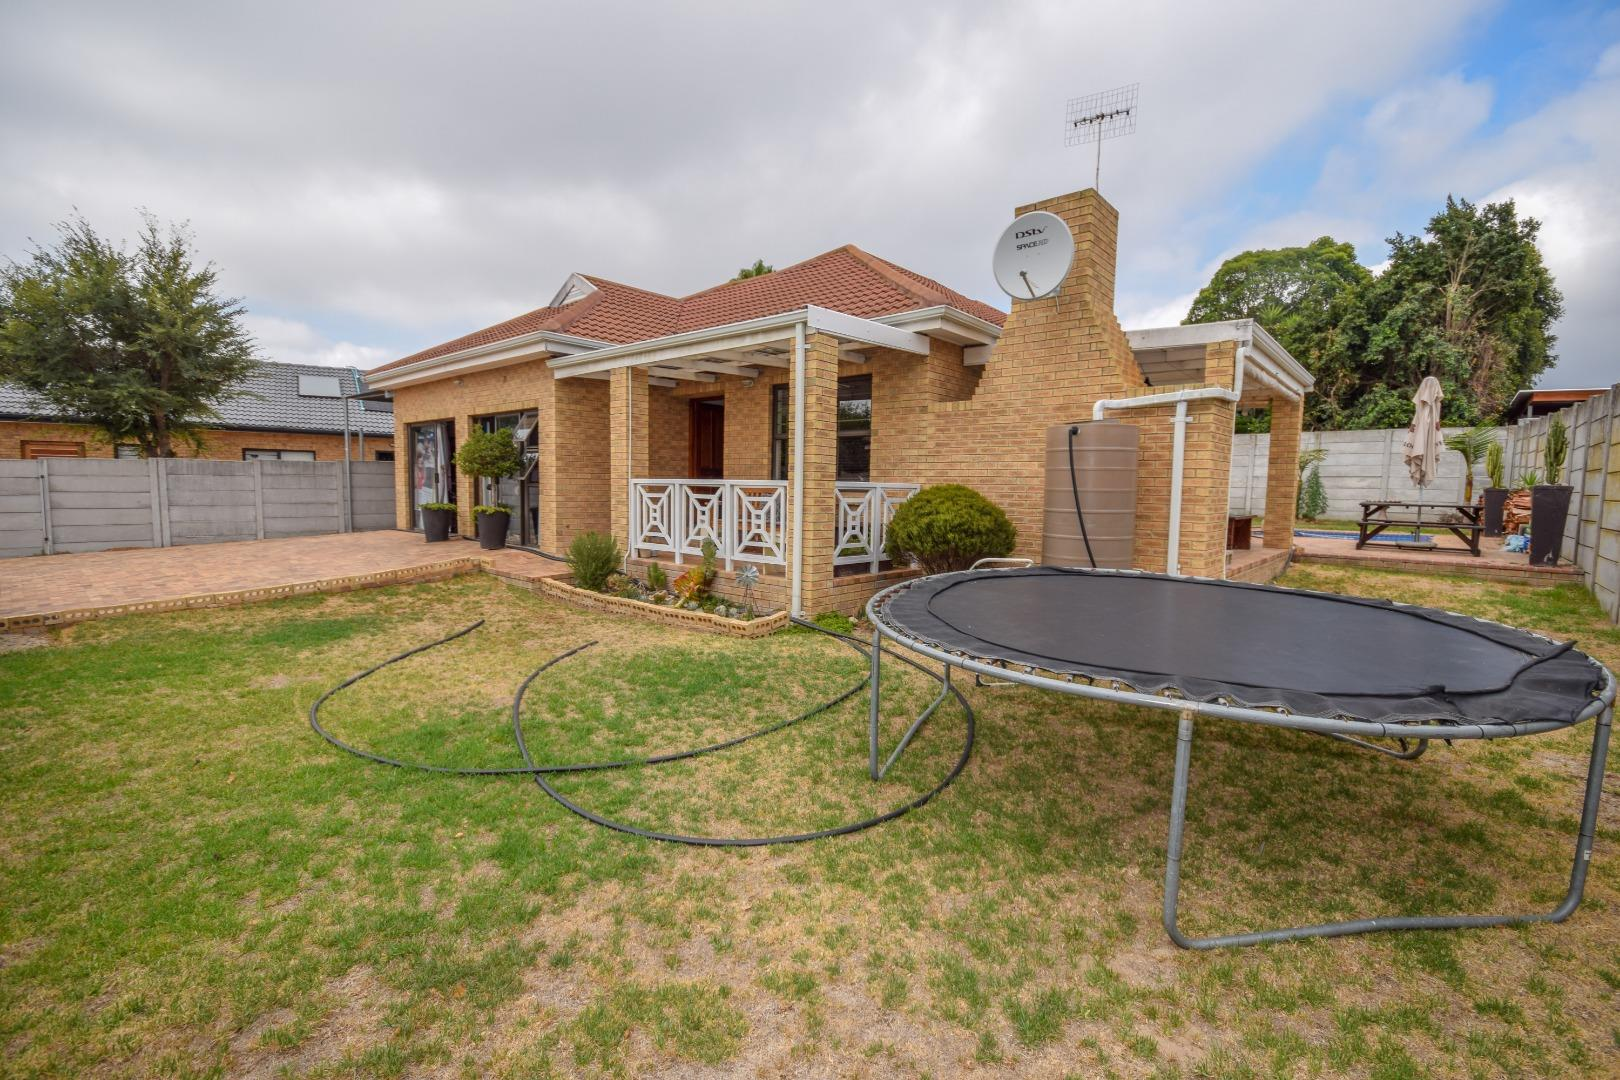 3 Bedroom  House for Sale in Kraaifontein - Western Cape